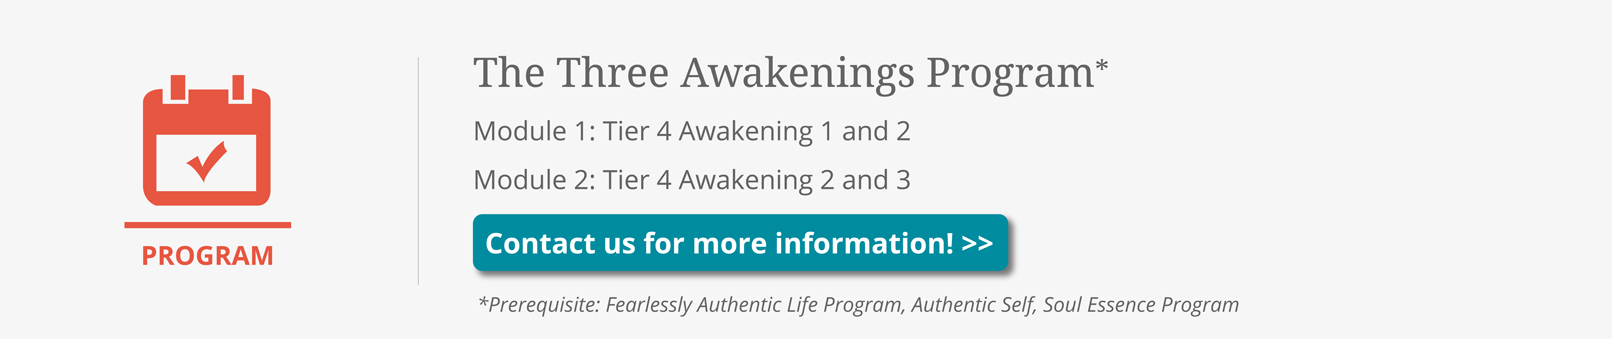 The-Three-Awakenings-Program